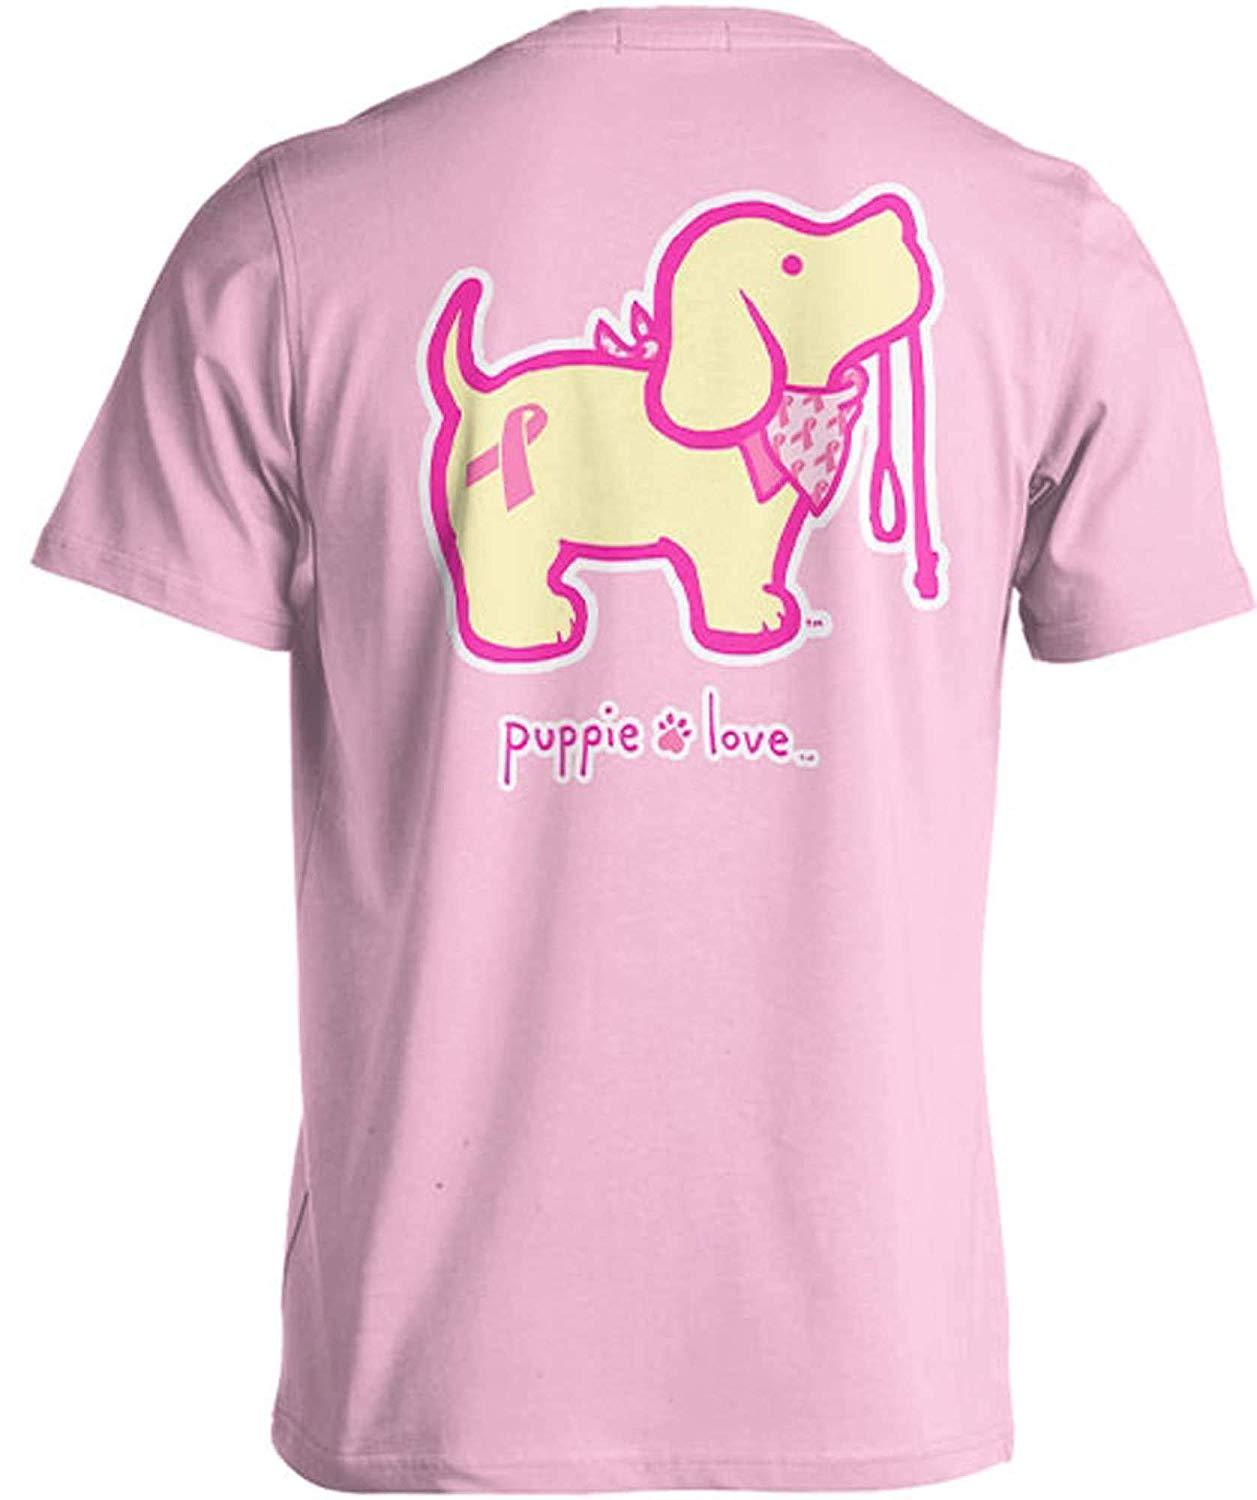 Puppie Love Rescue Dog Adult Unisex Short Sleeve Graphic T-Shirt, BCA Pup